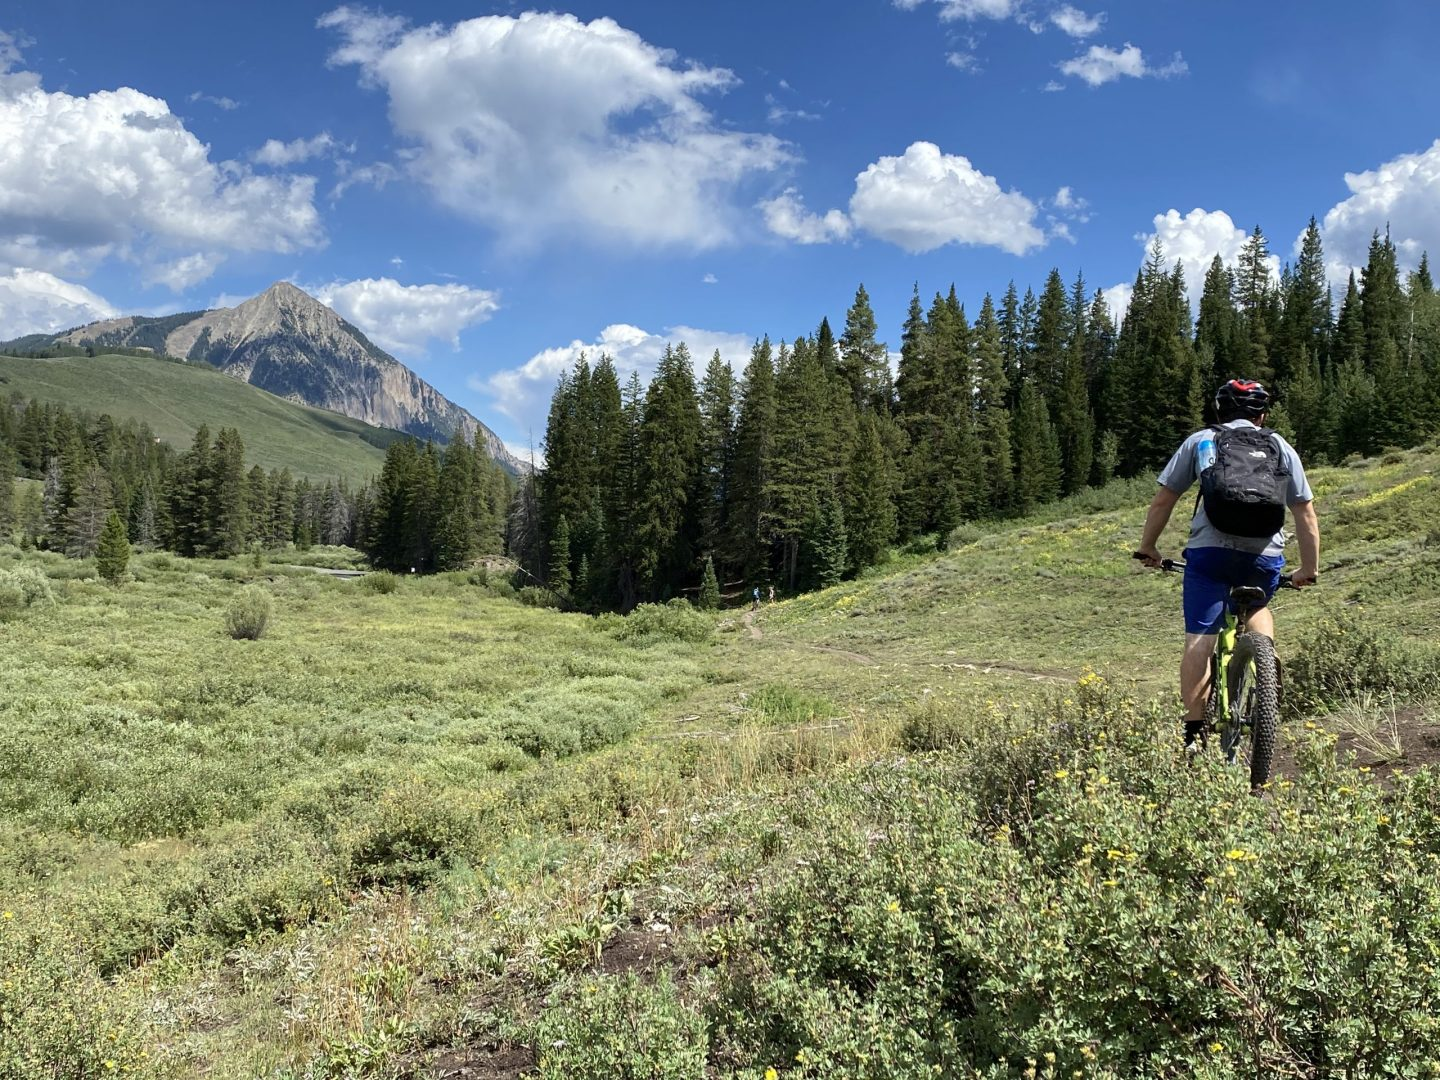 Things to do in Crested Butte - mountain biking